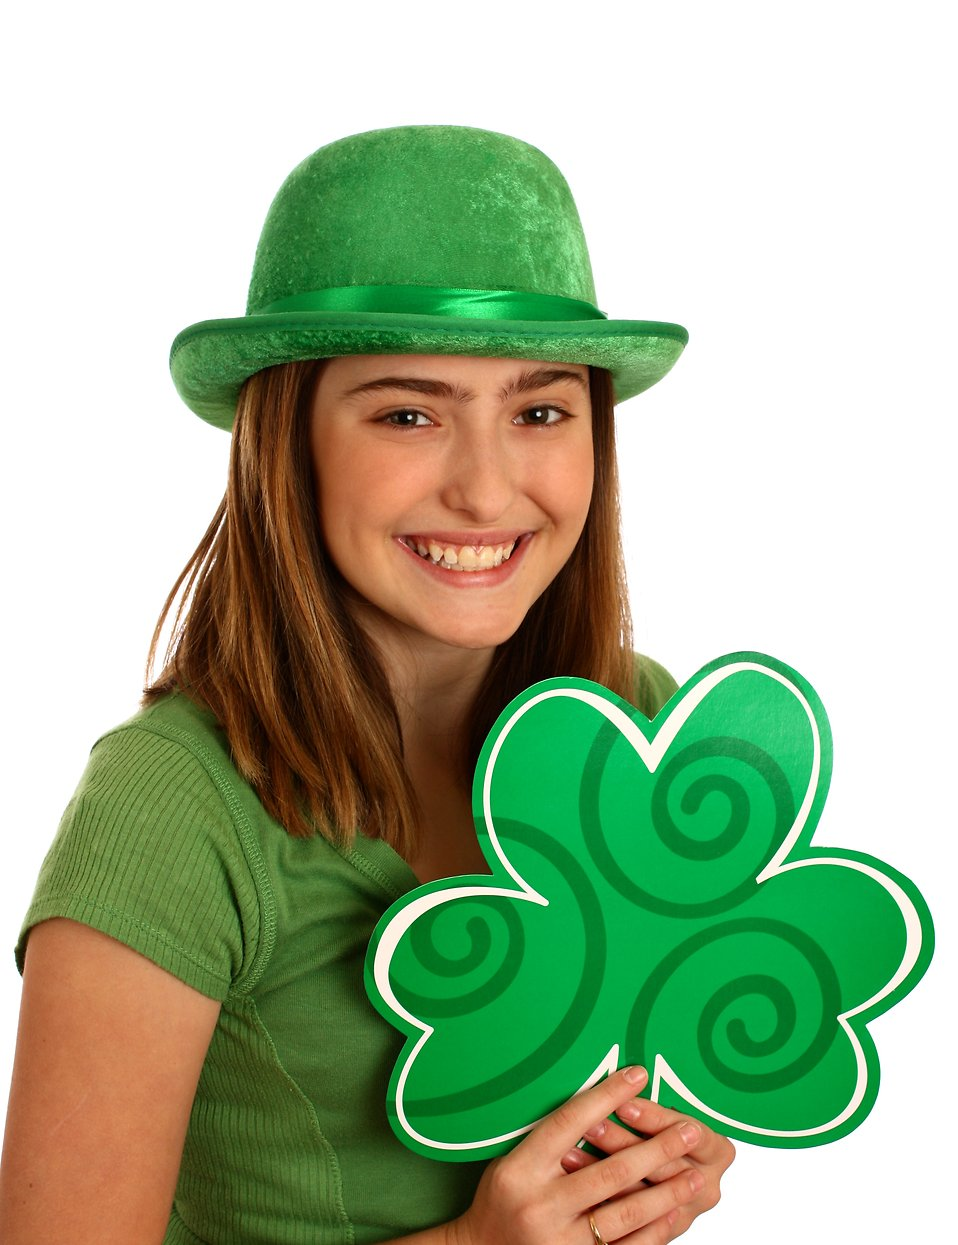 A cute young girl dressed up for Saint Patrick's Day holding a large shamrock : Free Stock Photo